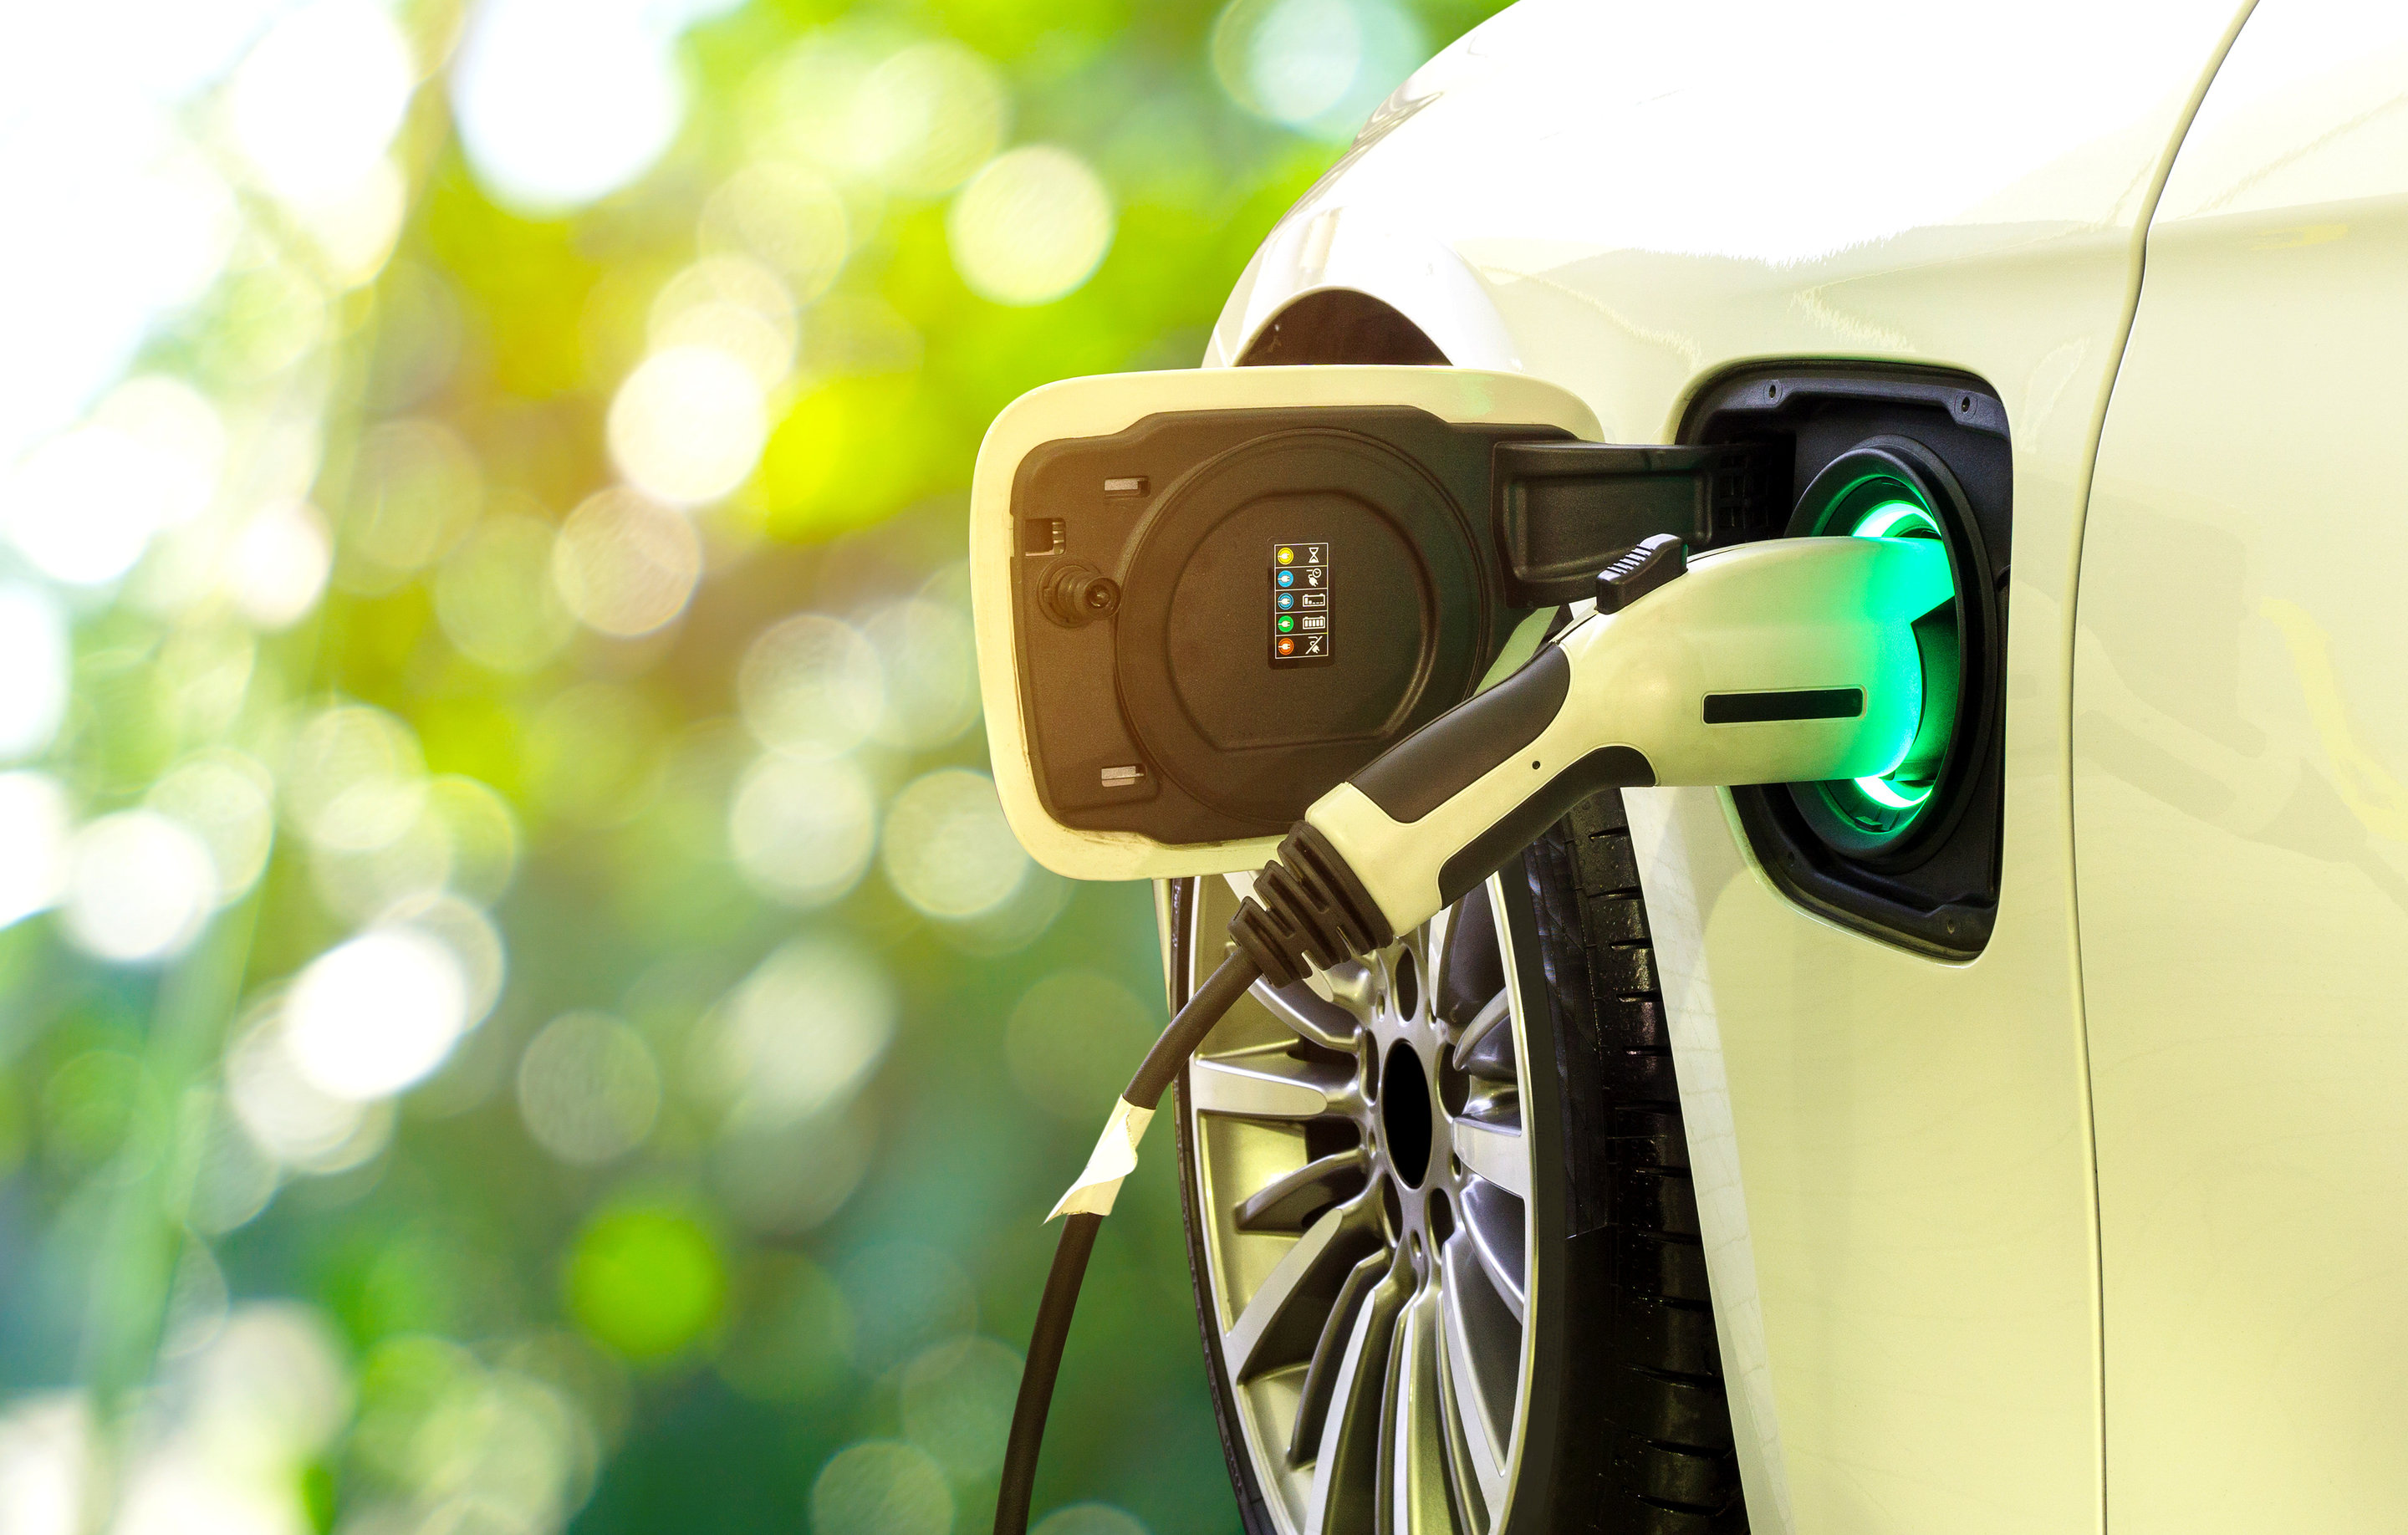 The New Electric Vehicle Highway Is A Welcome Gear Shift